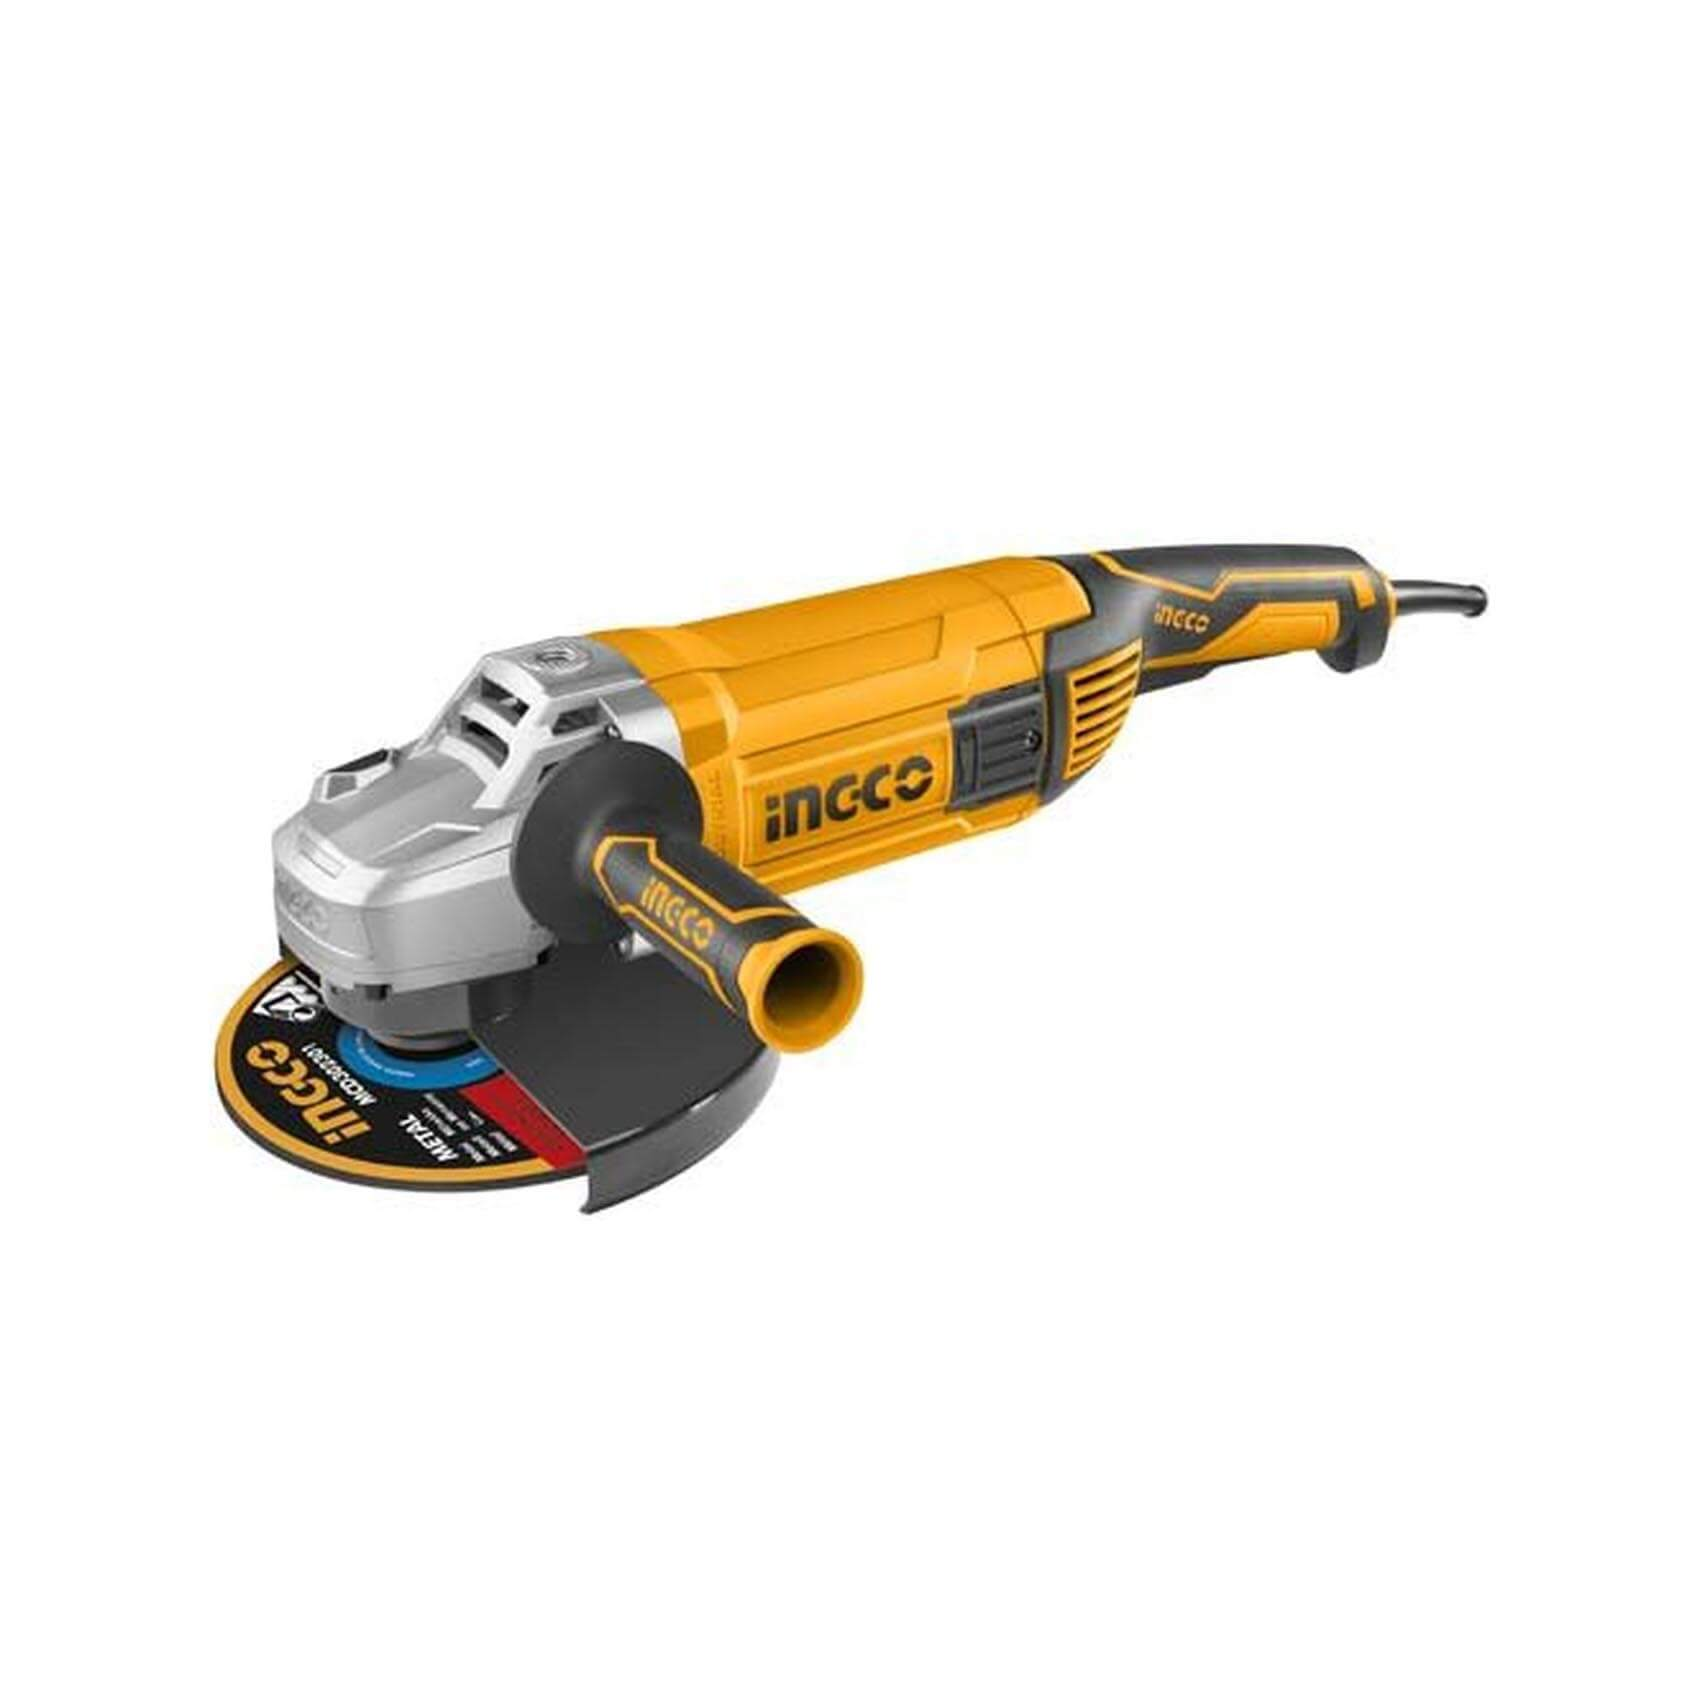 ingco_9inches_Angle_grinder_2600w_-_AG26008